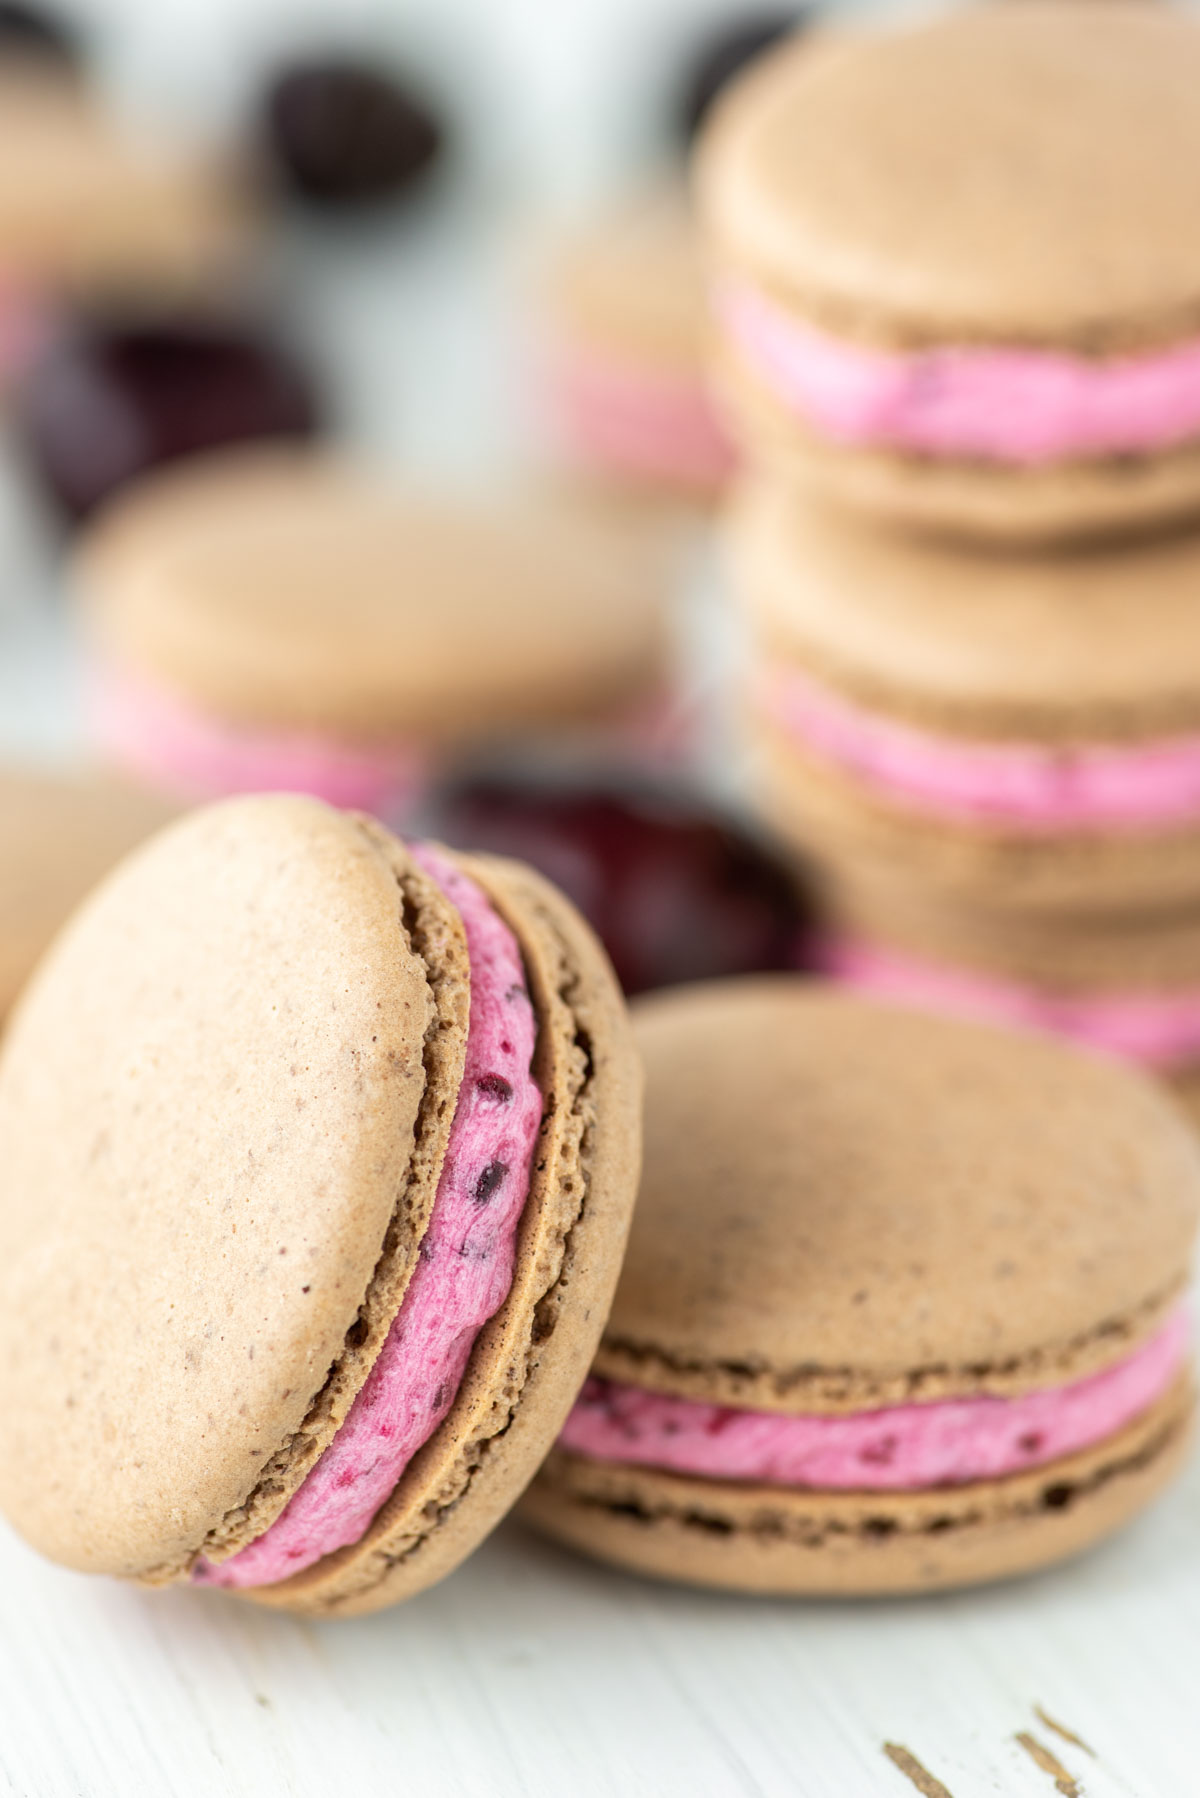 cherry macaron stacked against another with more in the background